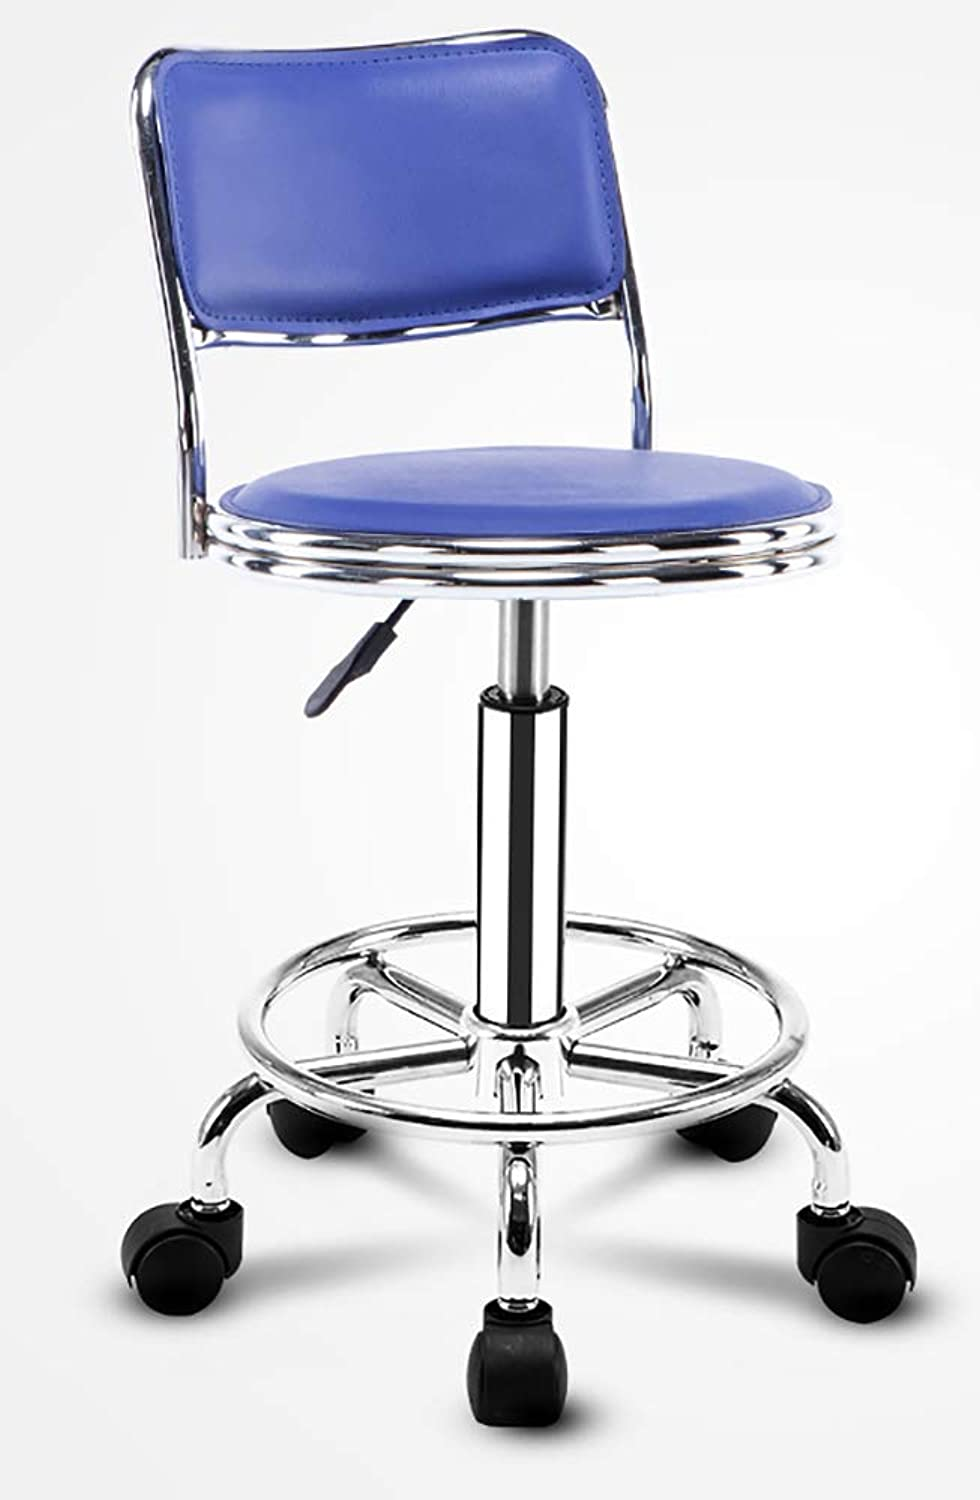 Bar Lift Swivel Chair, Fashion Beauty Back Round high Stool-bluee